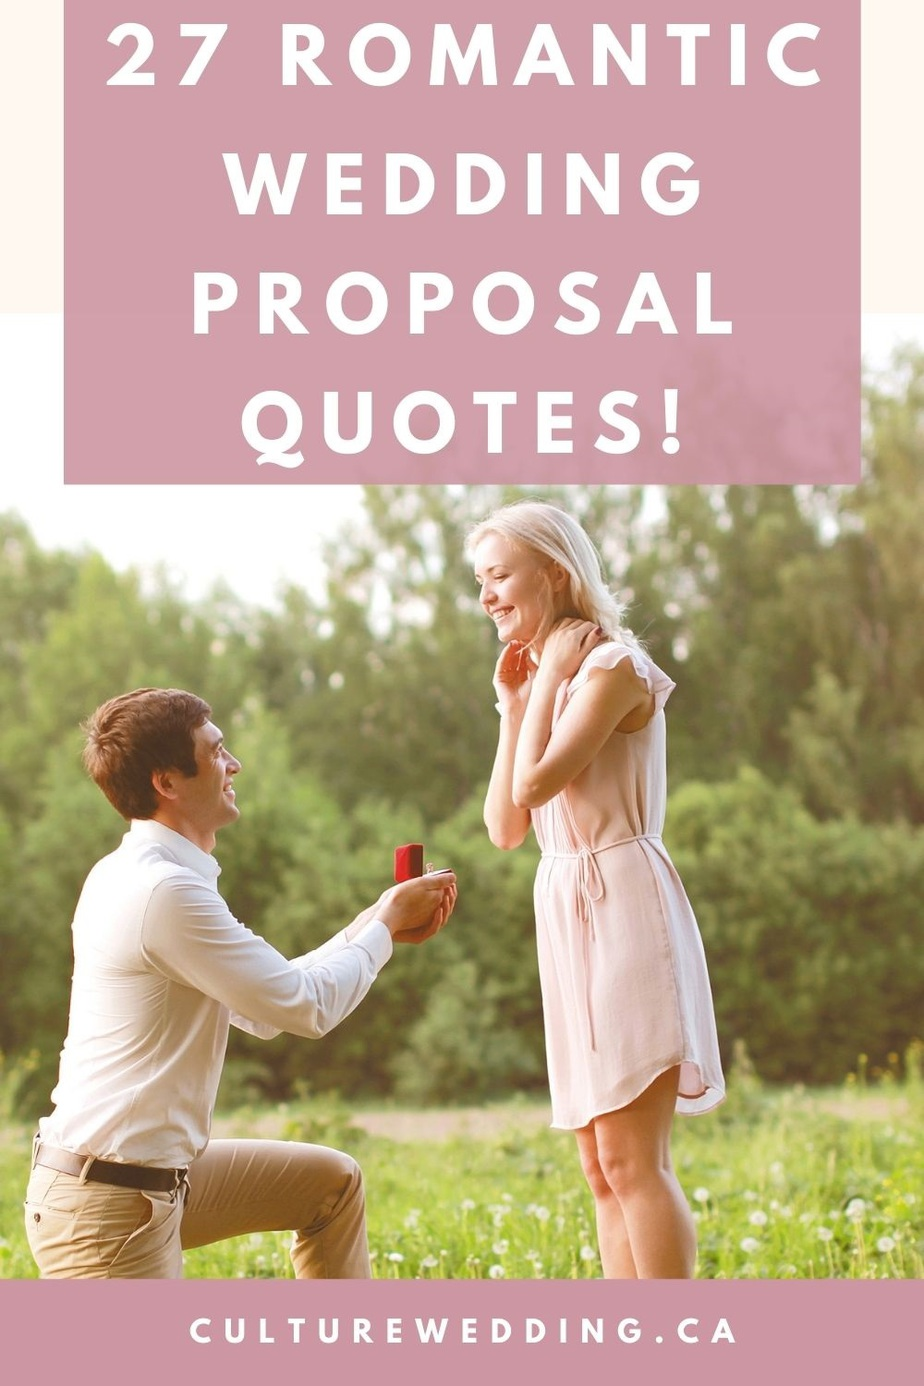 Check out the post for our best wedding proposal quotes! If you are looking for will you marry me quotes to use for your proposal, you have come to the right place. If you don't know what to say when proposing, we have plenty of great ideas for you too!